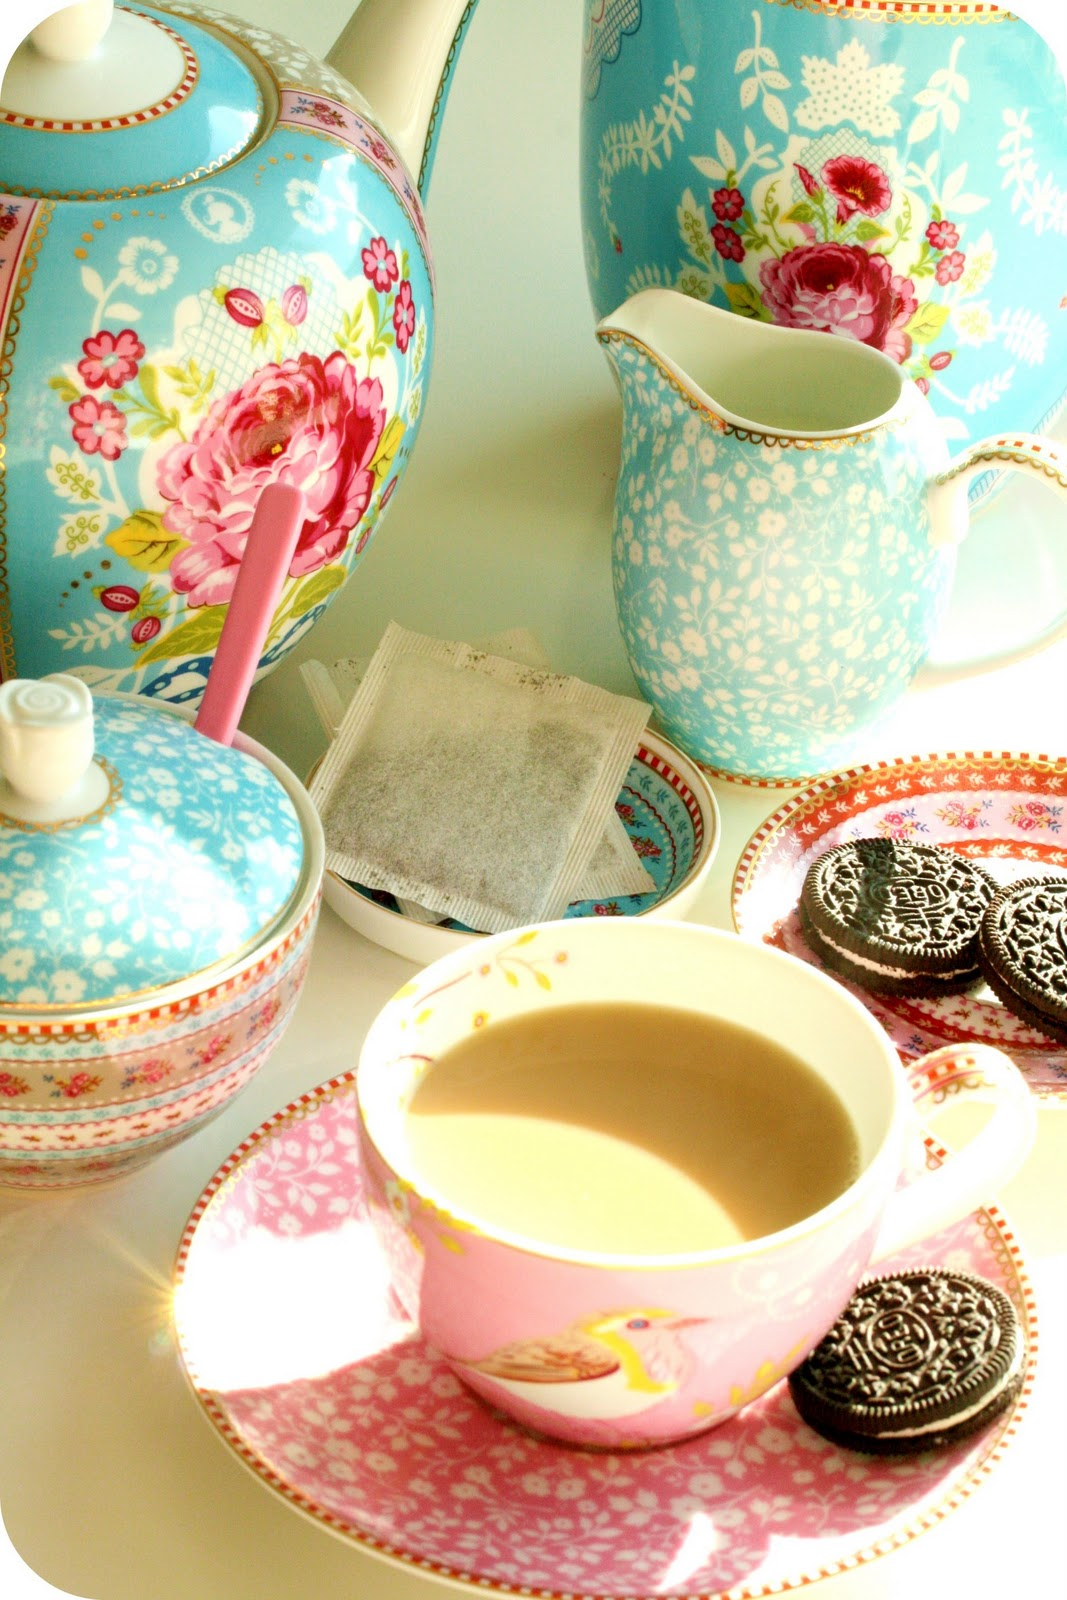 Fun Kitchen Items: Pip Studio High Tea China